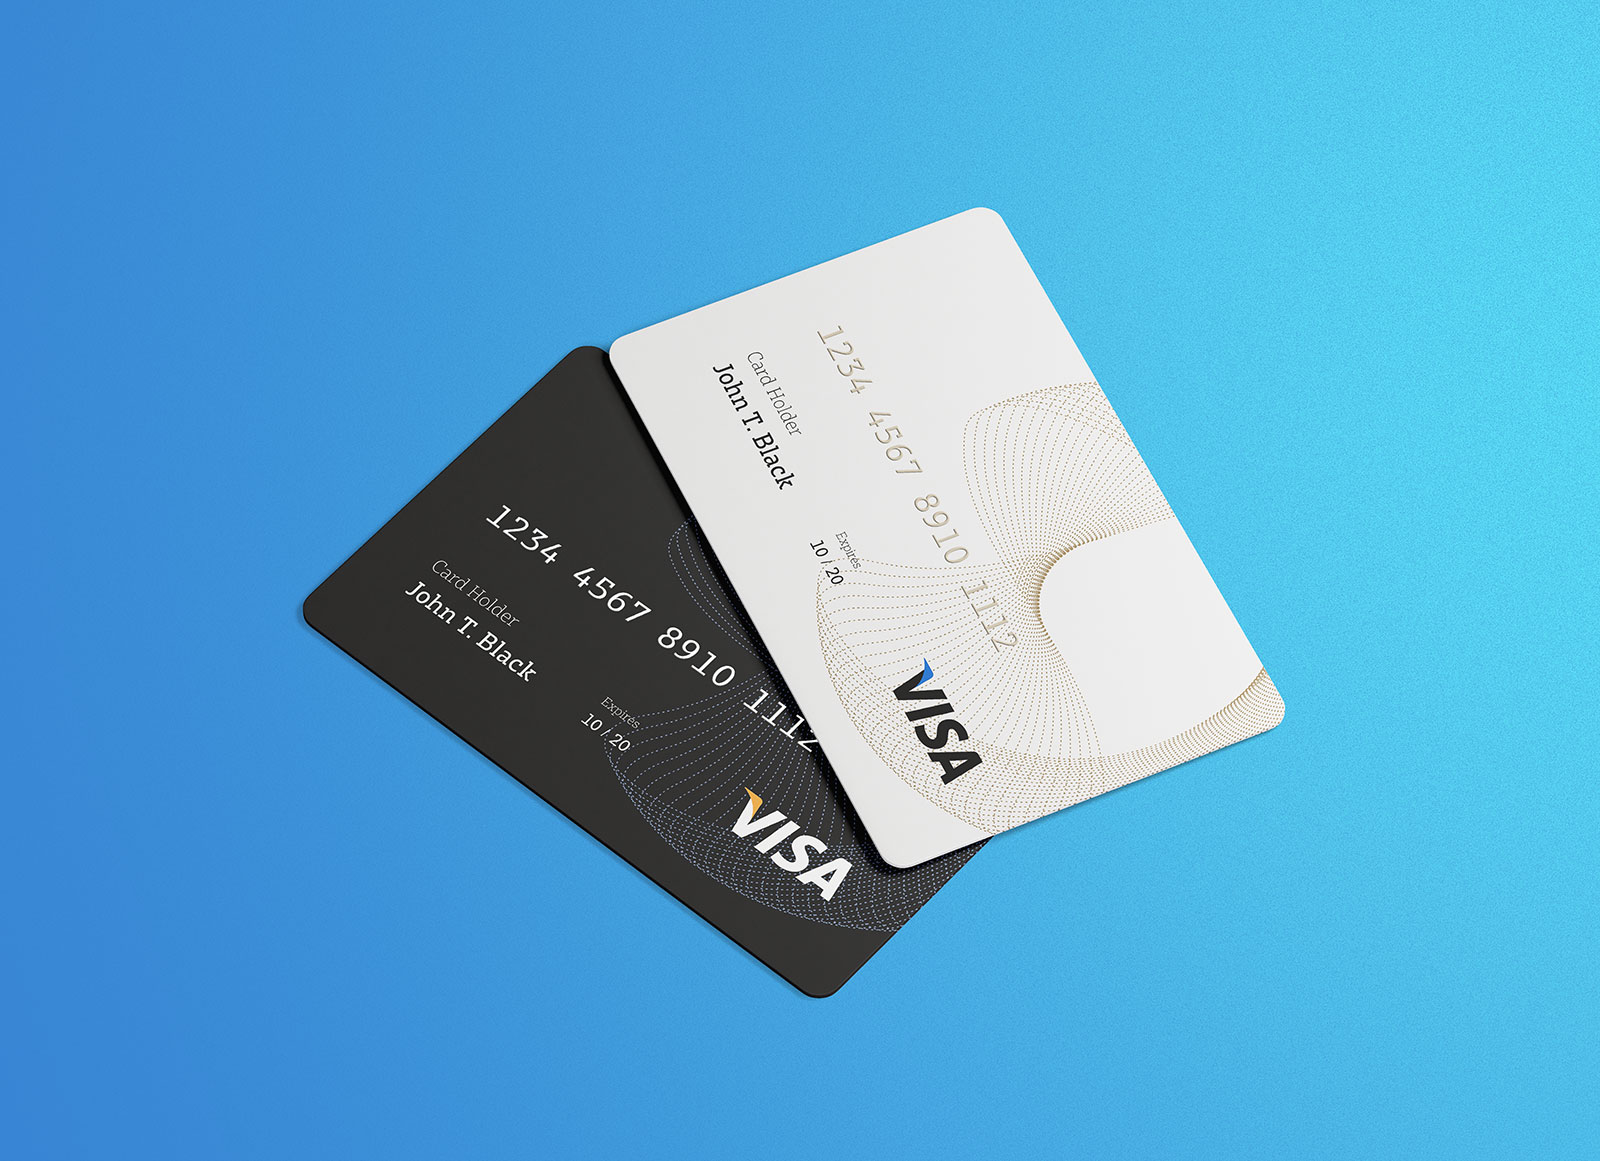 Free Credit Visa Card Mockup Psd Good Mockups